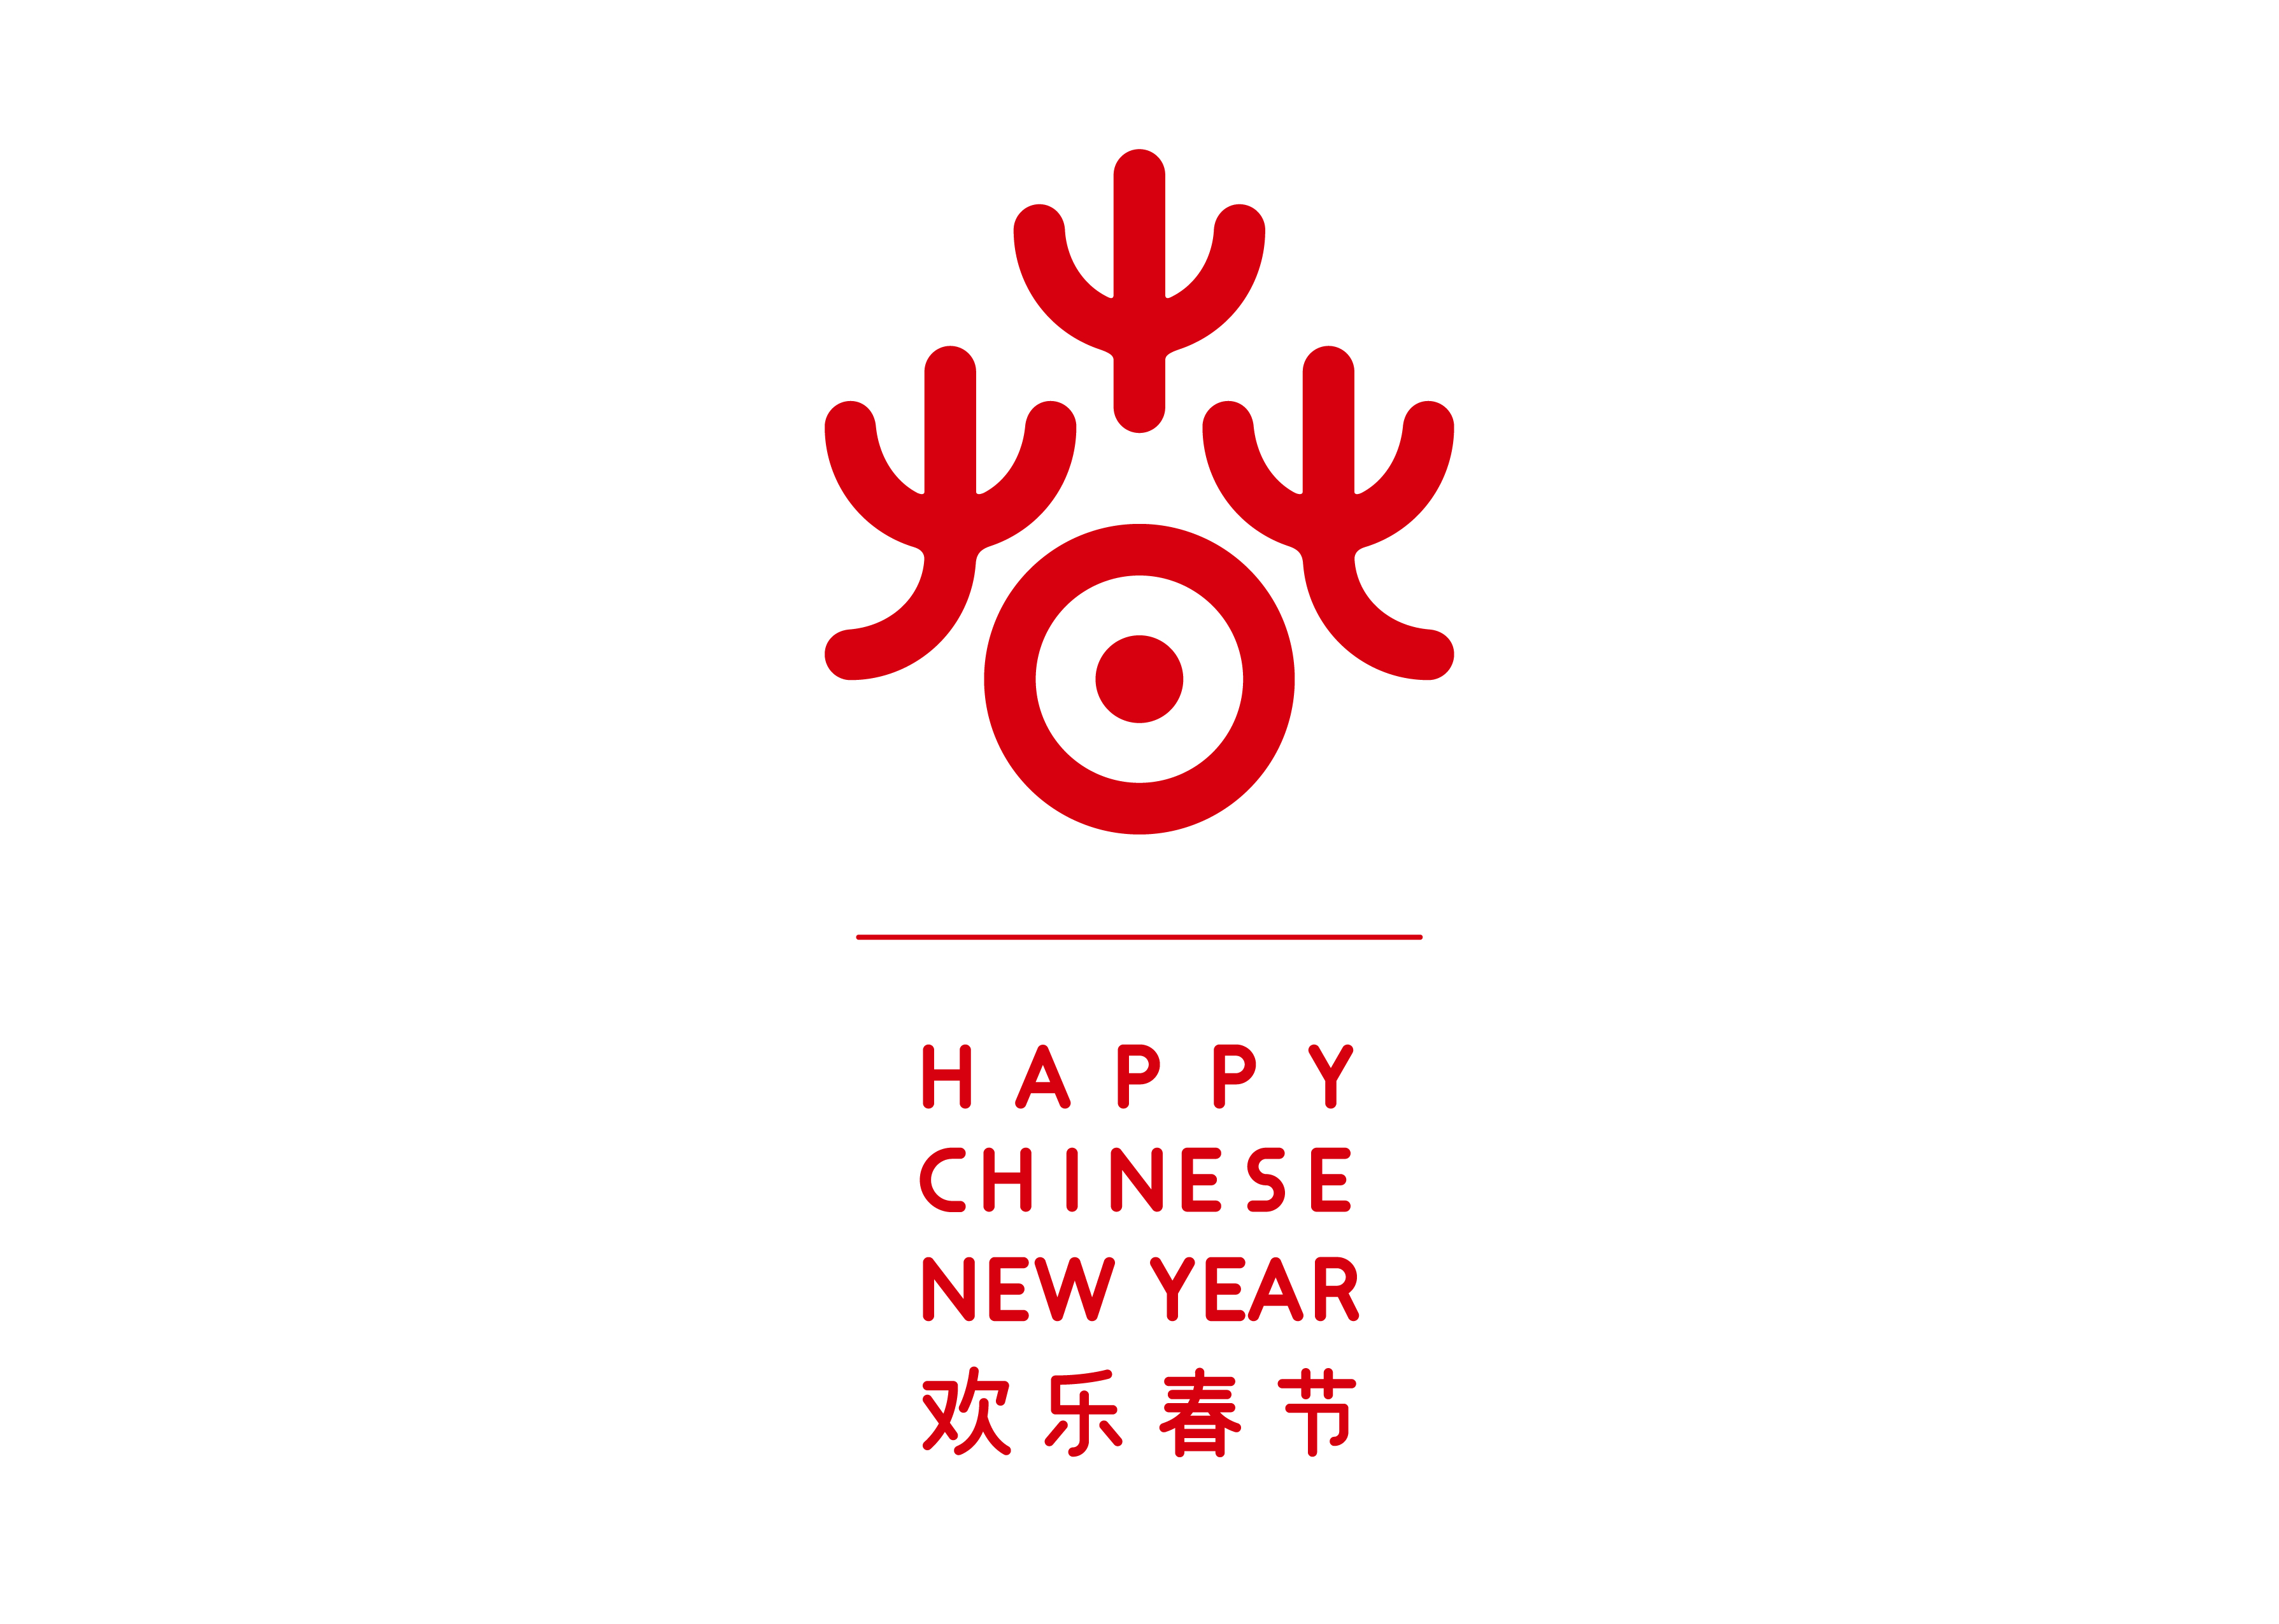 Just Share It Happy Chinese New Year Photo Contest 2016